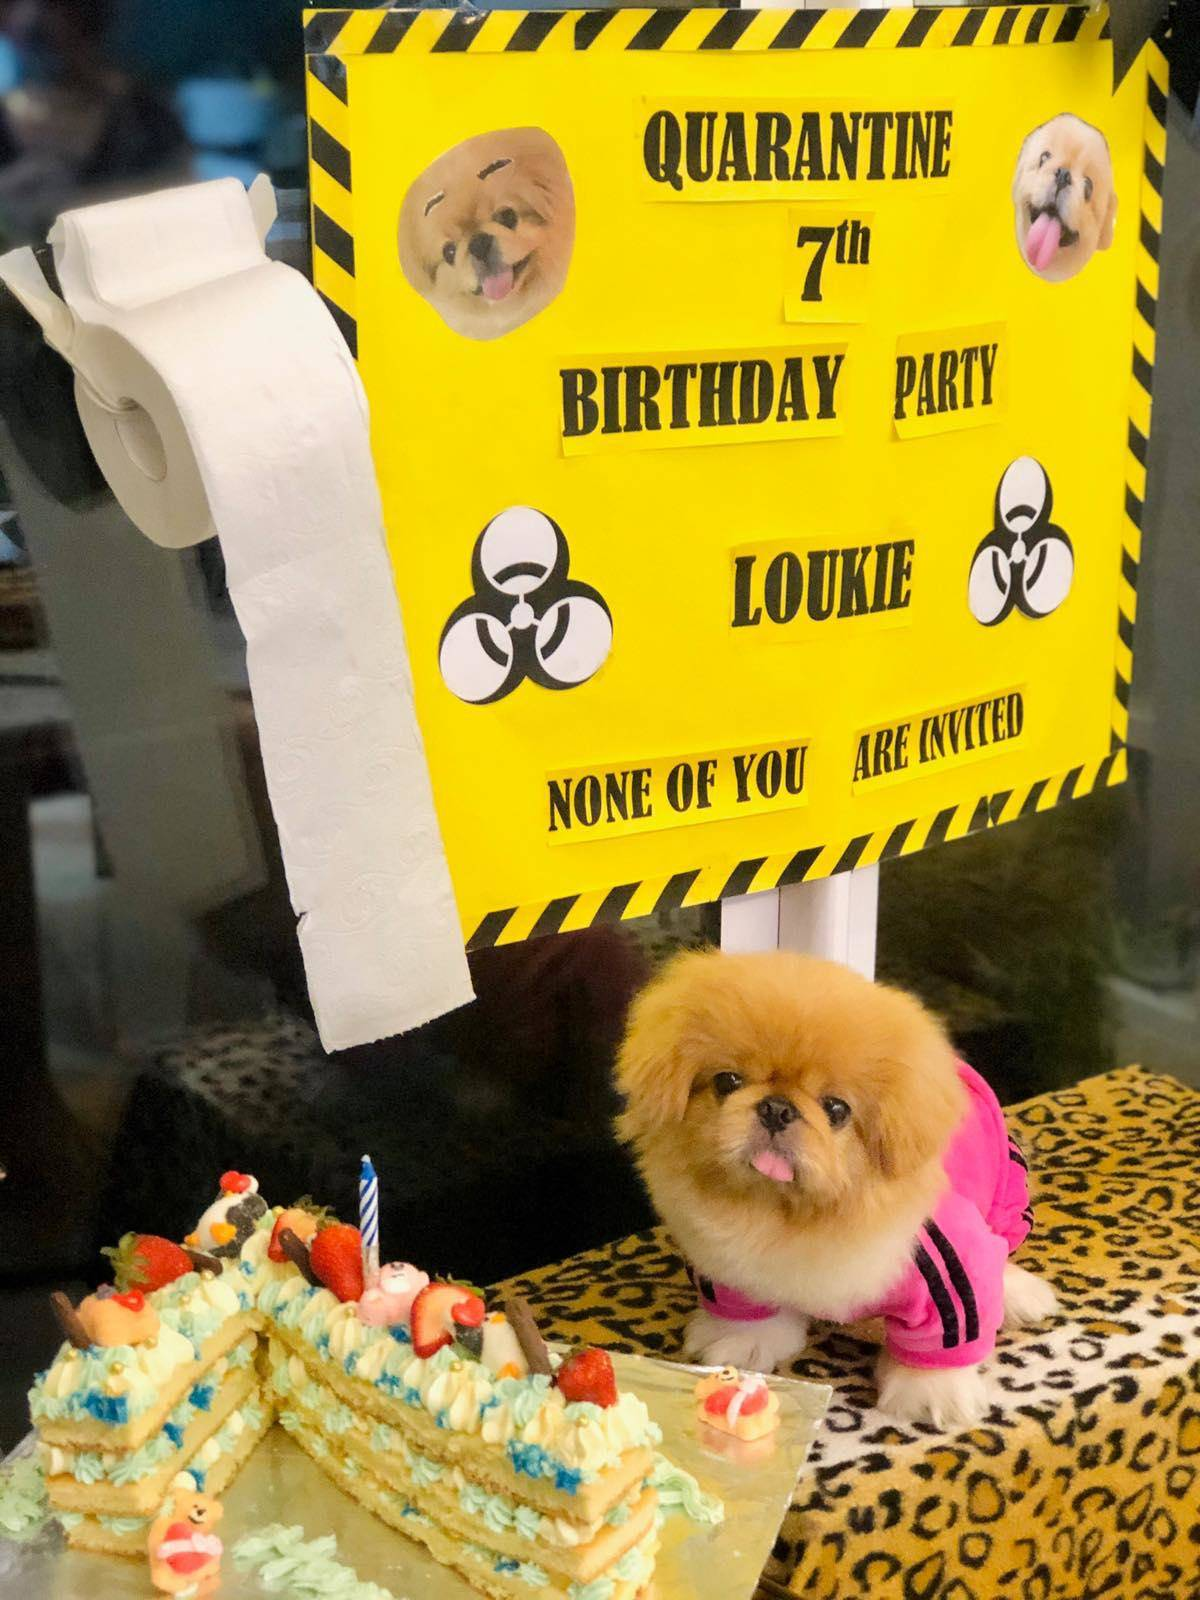 A dog sits next to a cake underneath a sign that says,